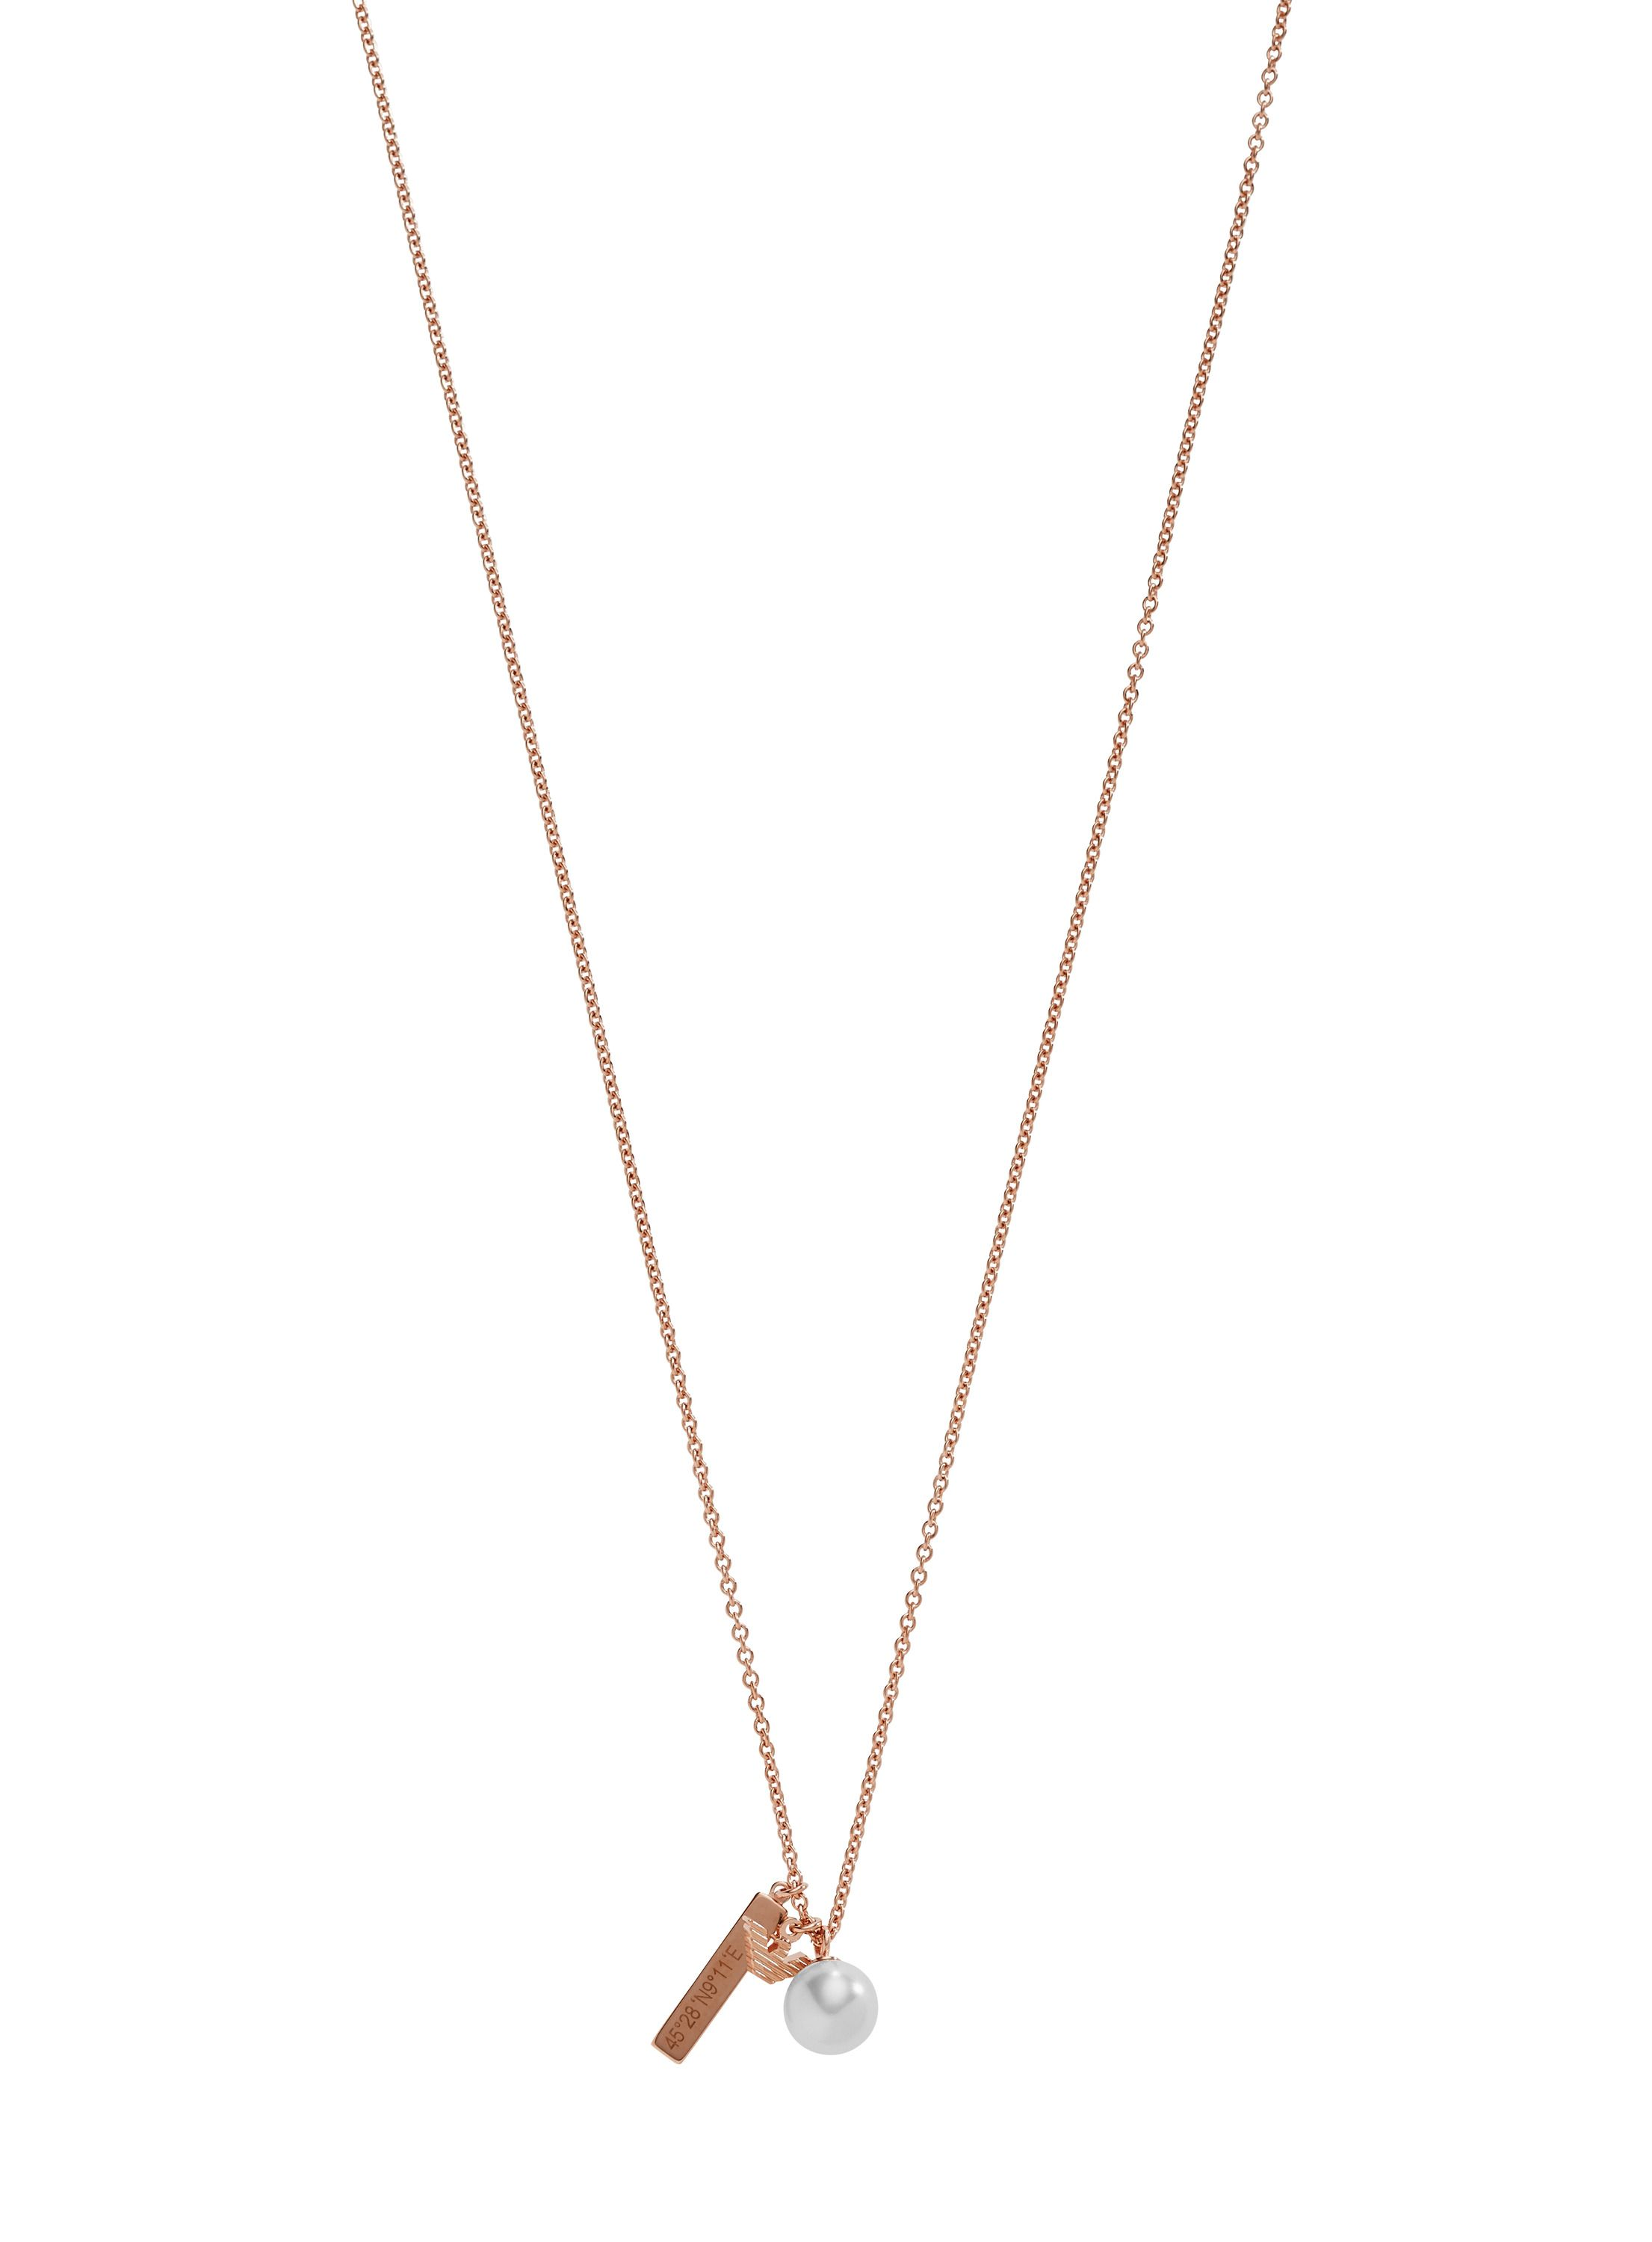 Emporio Armani EG3313221 ladies necklace Rose Gold